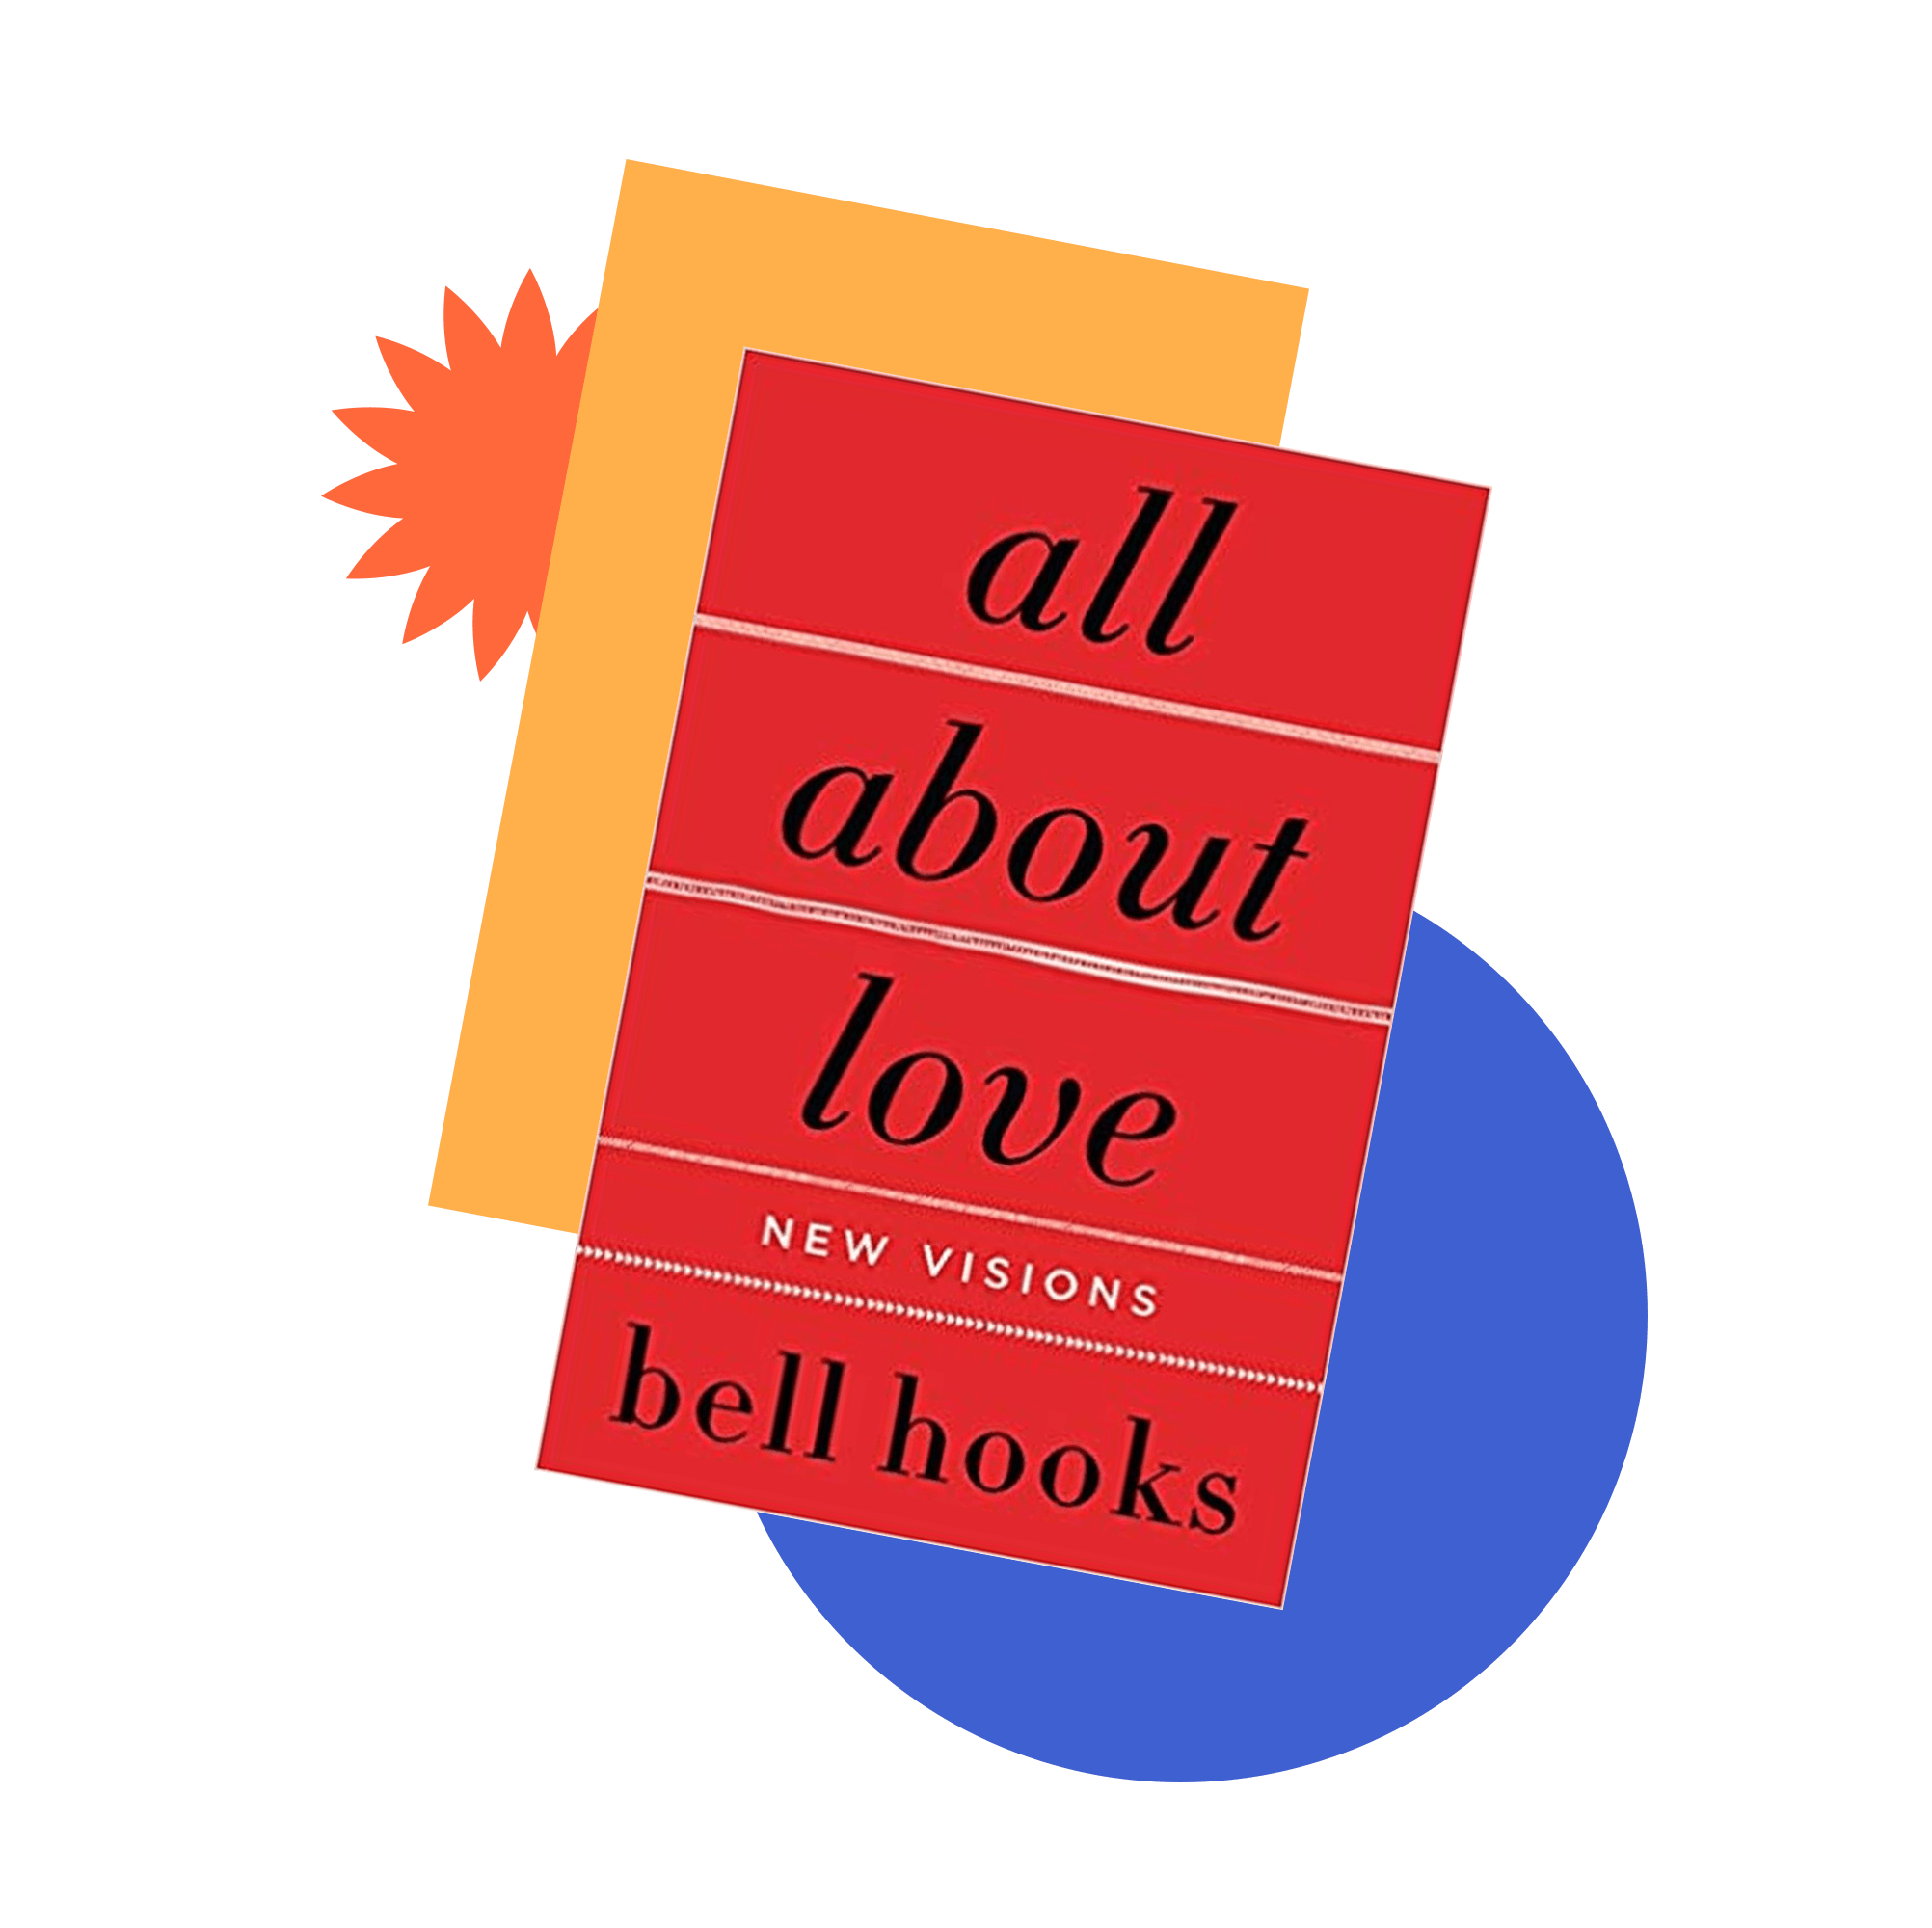 Book jacket cover for All About Love: New Visions by bell hooks